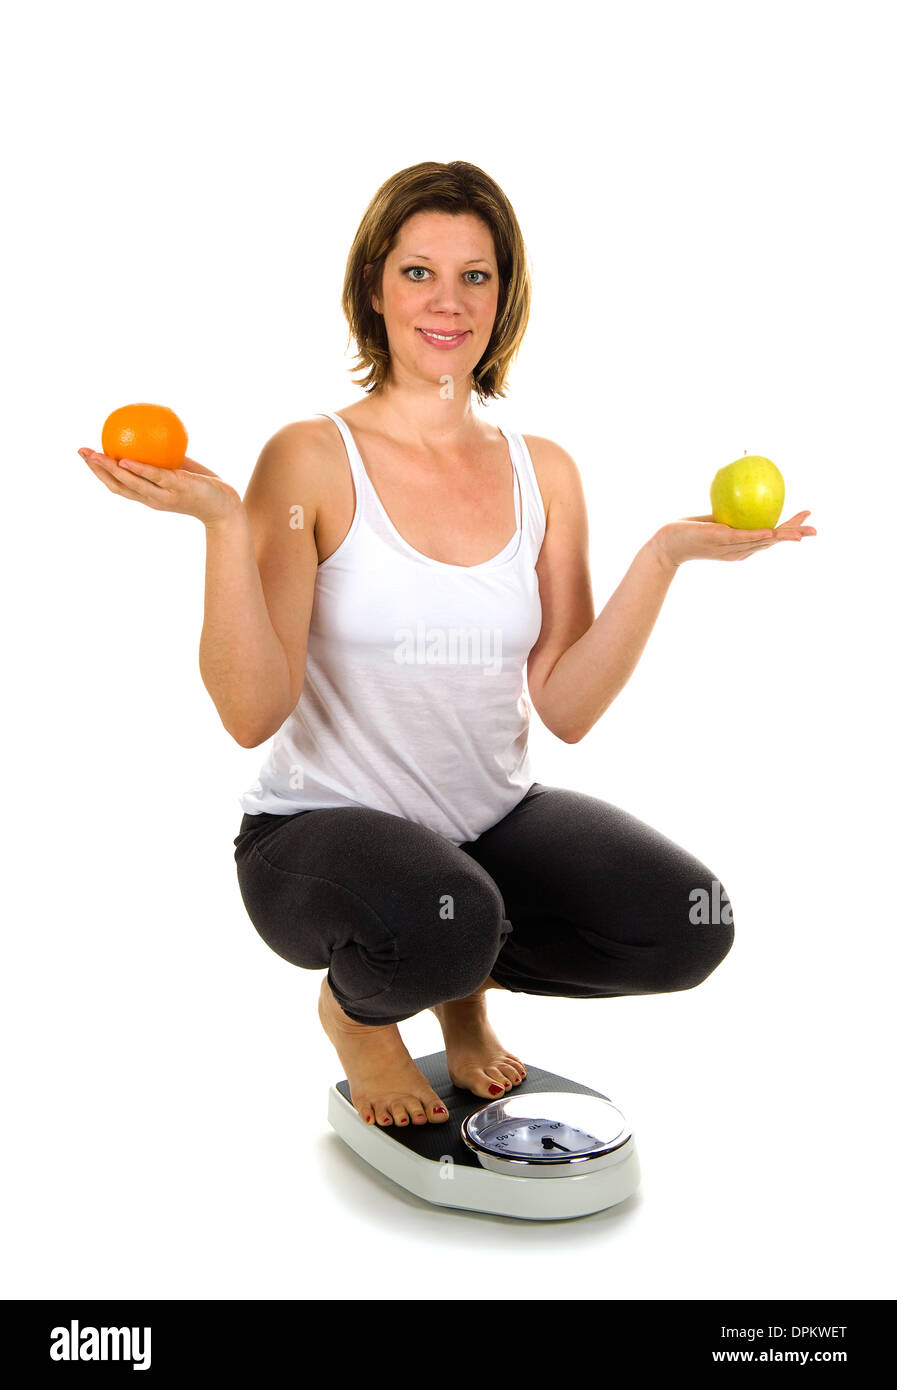 A woman is sitting on a weight scale with fruit - Stock Image